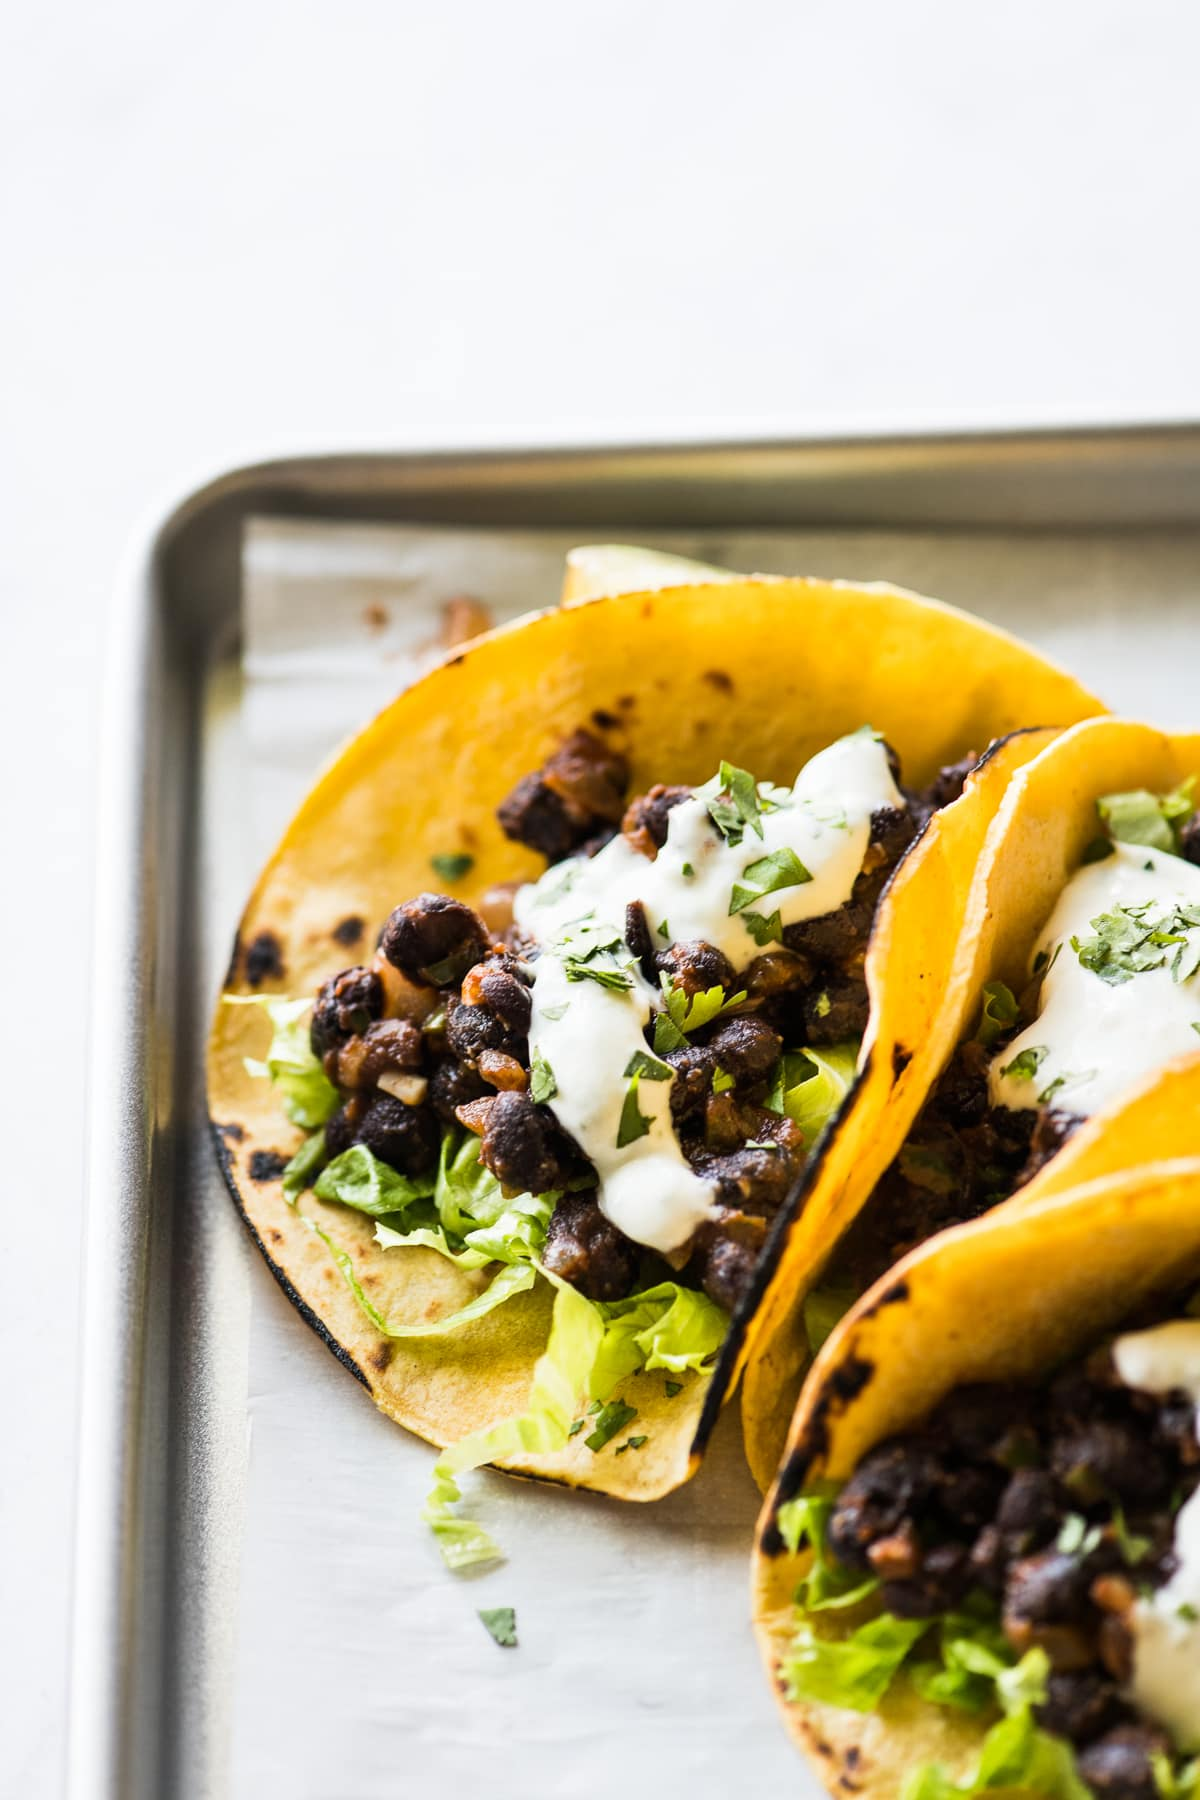 Cilantro lime crema on black bean tacos.